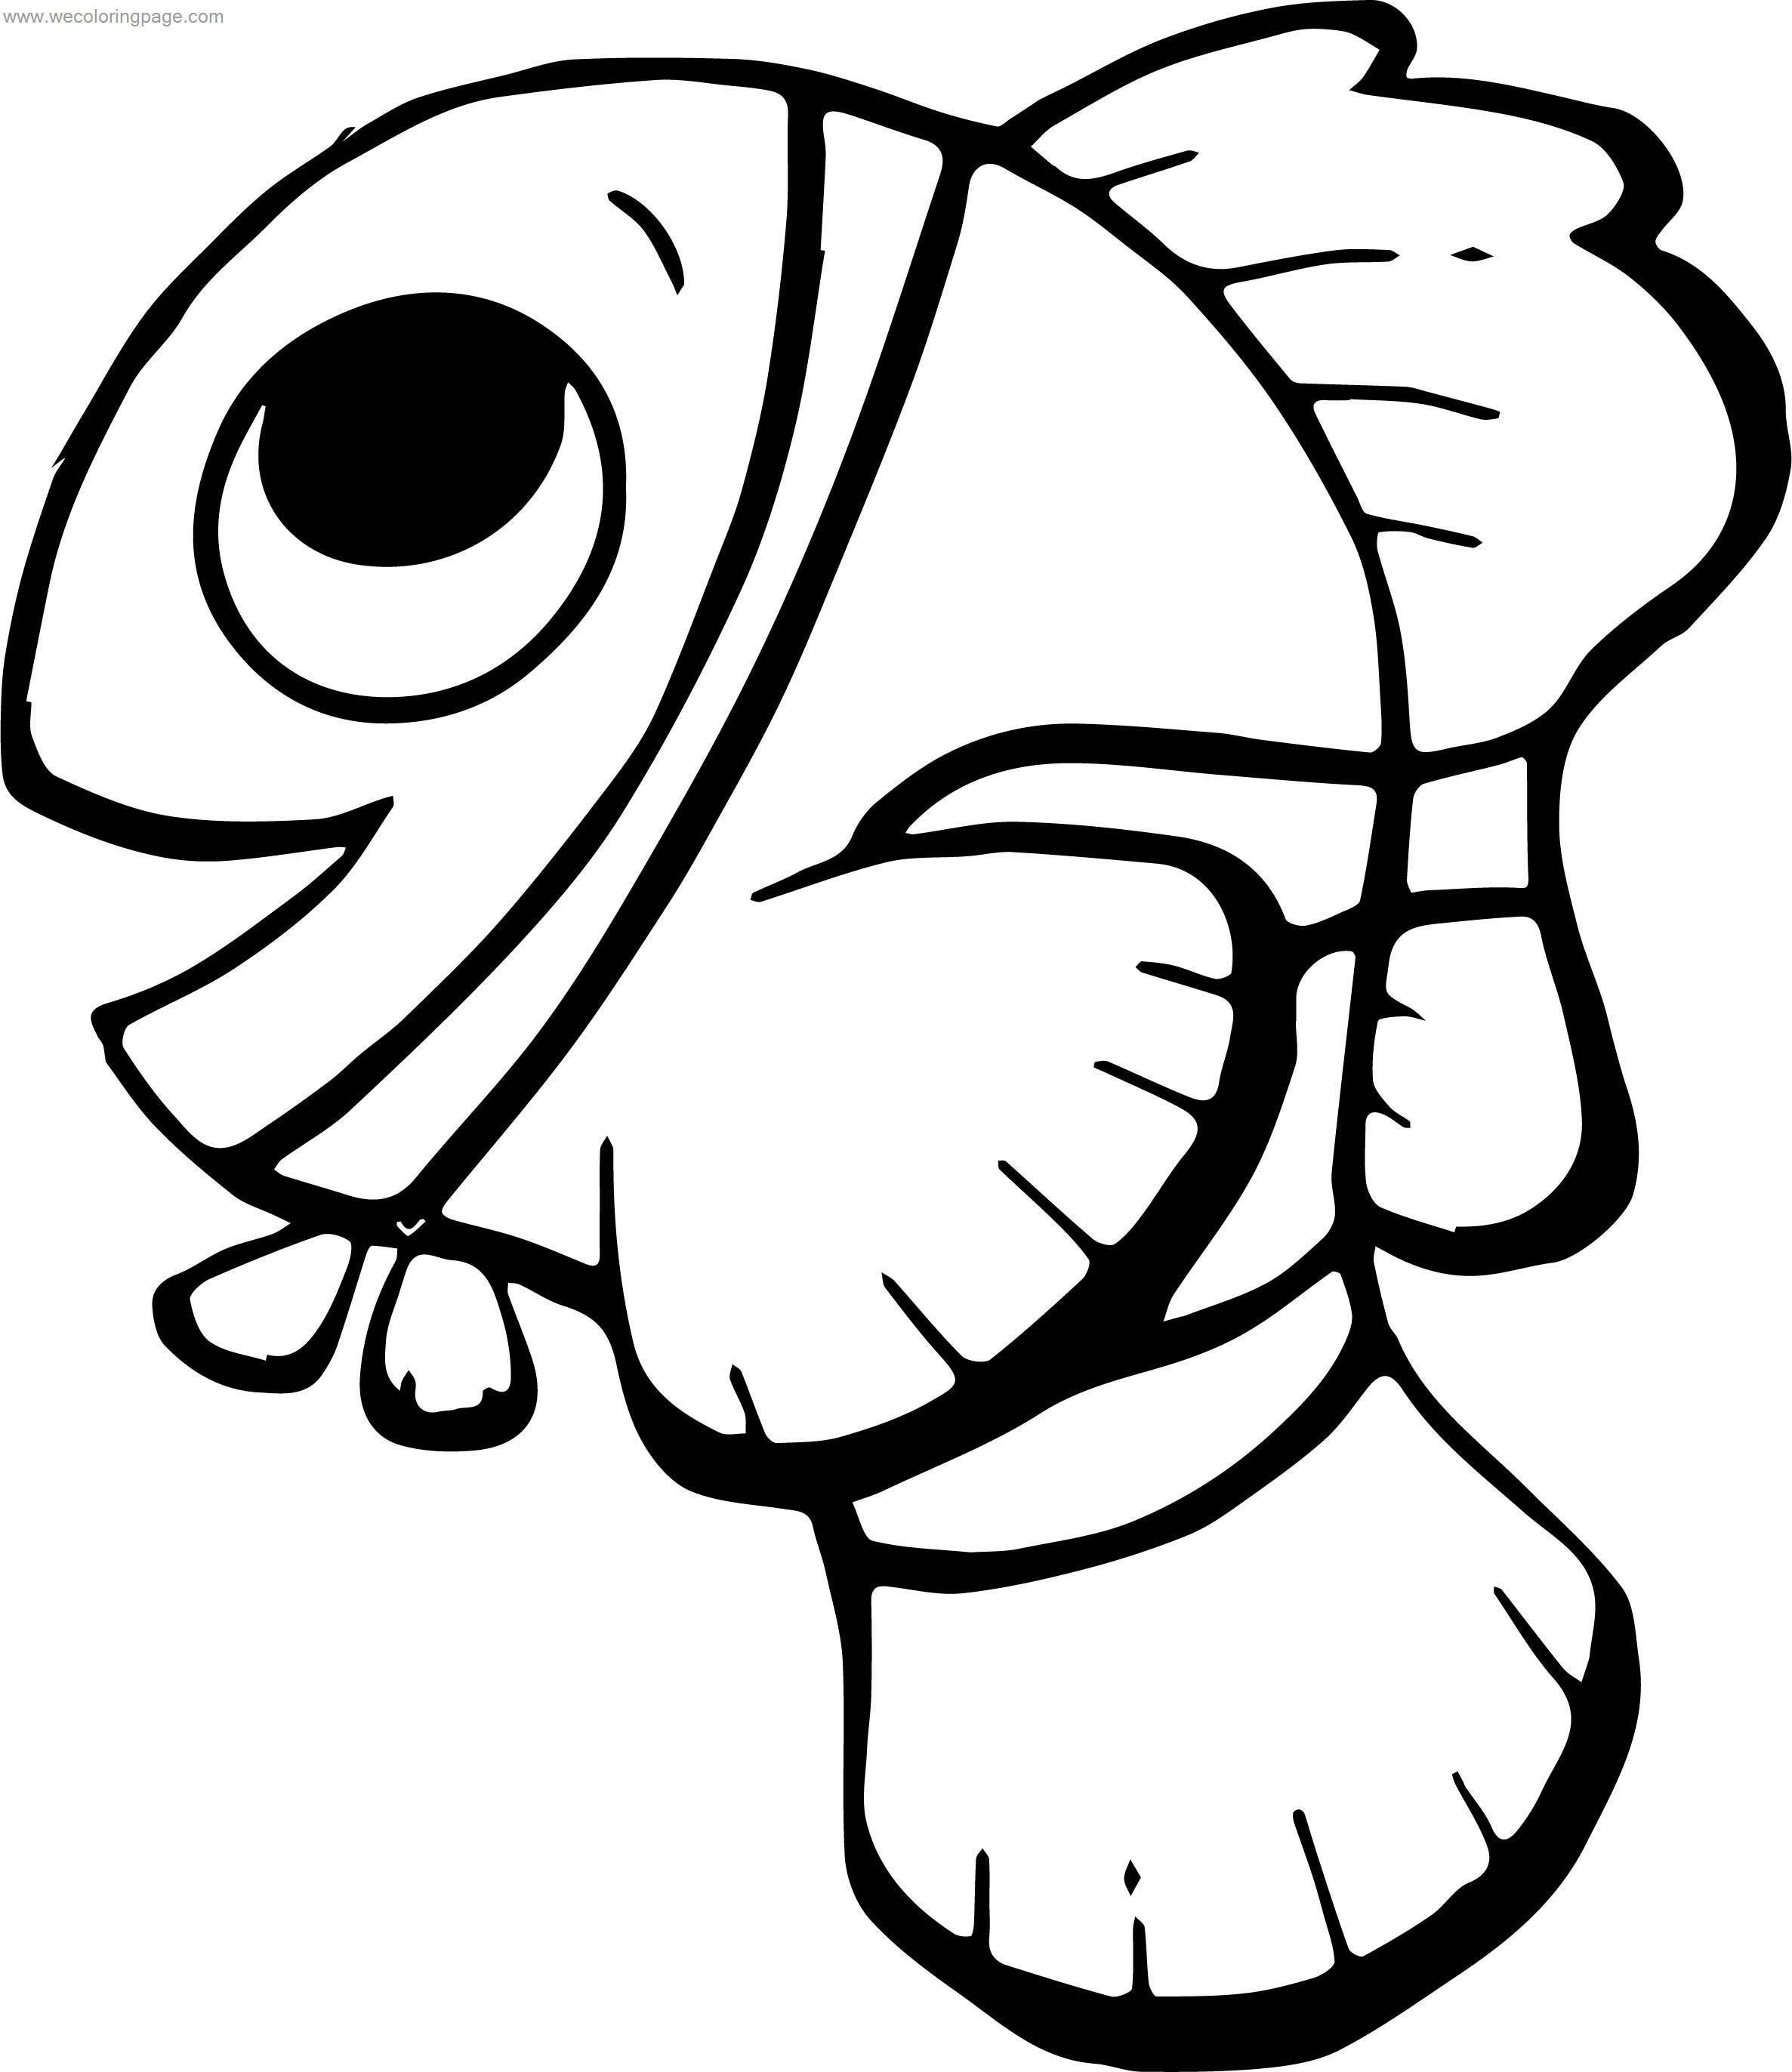 Disney Finding Nemonemo Side View Coloring Pages